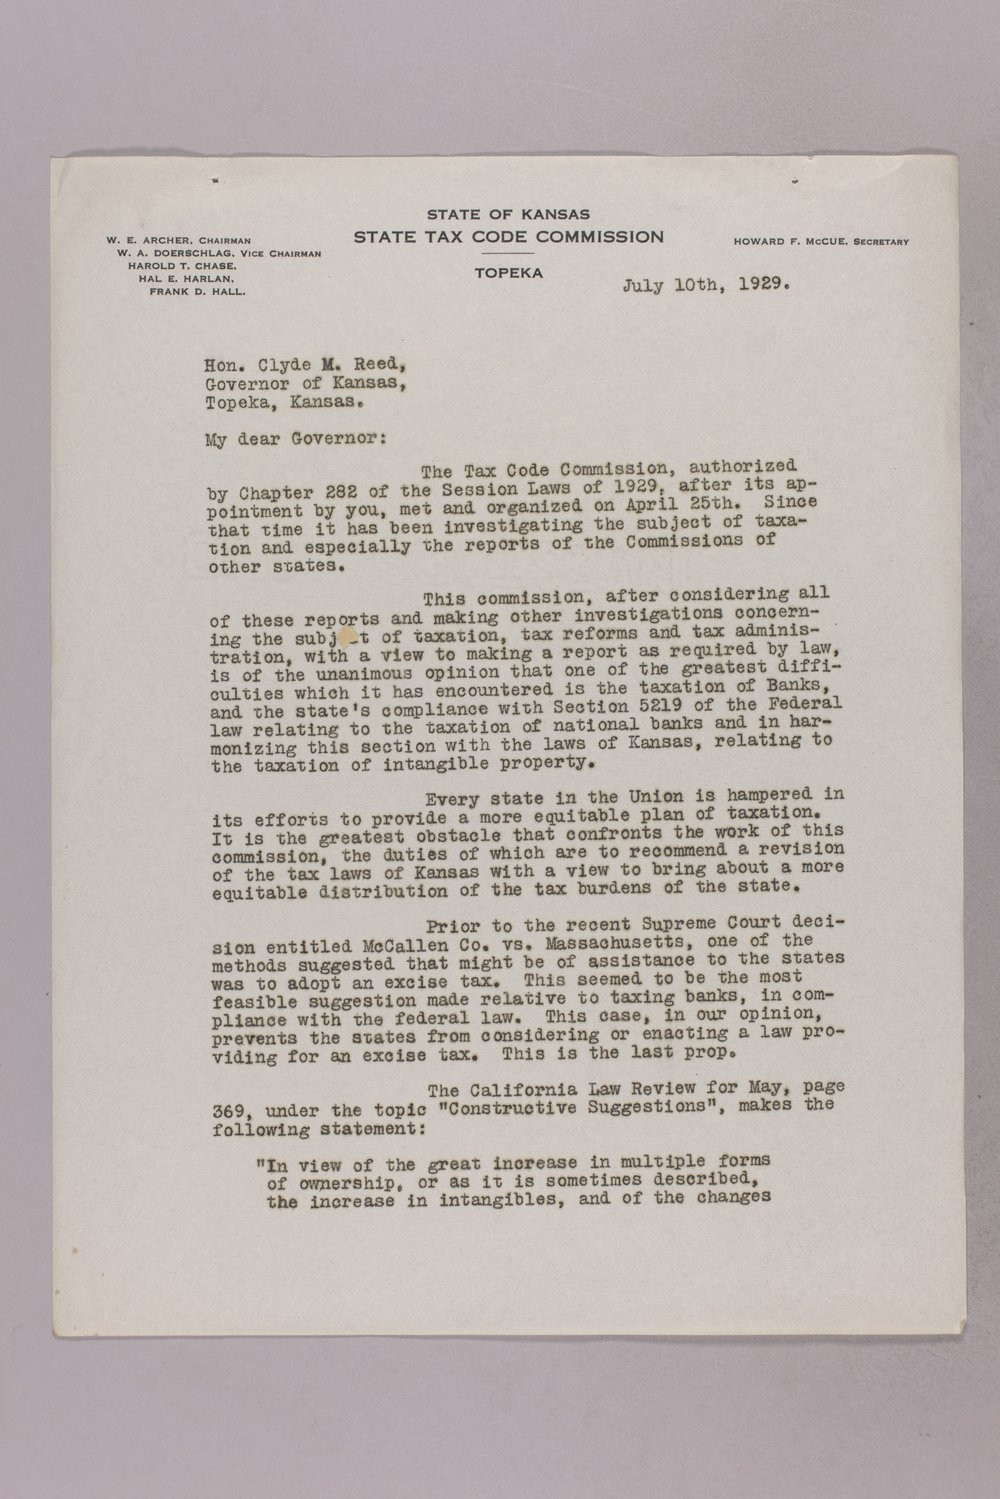 Governor Clyde M. Reed correspondence, Tax Code Commission - 1